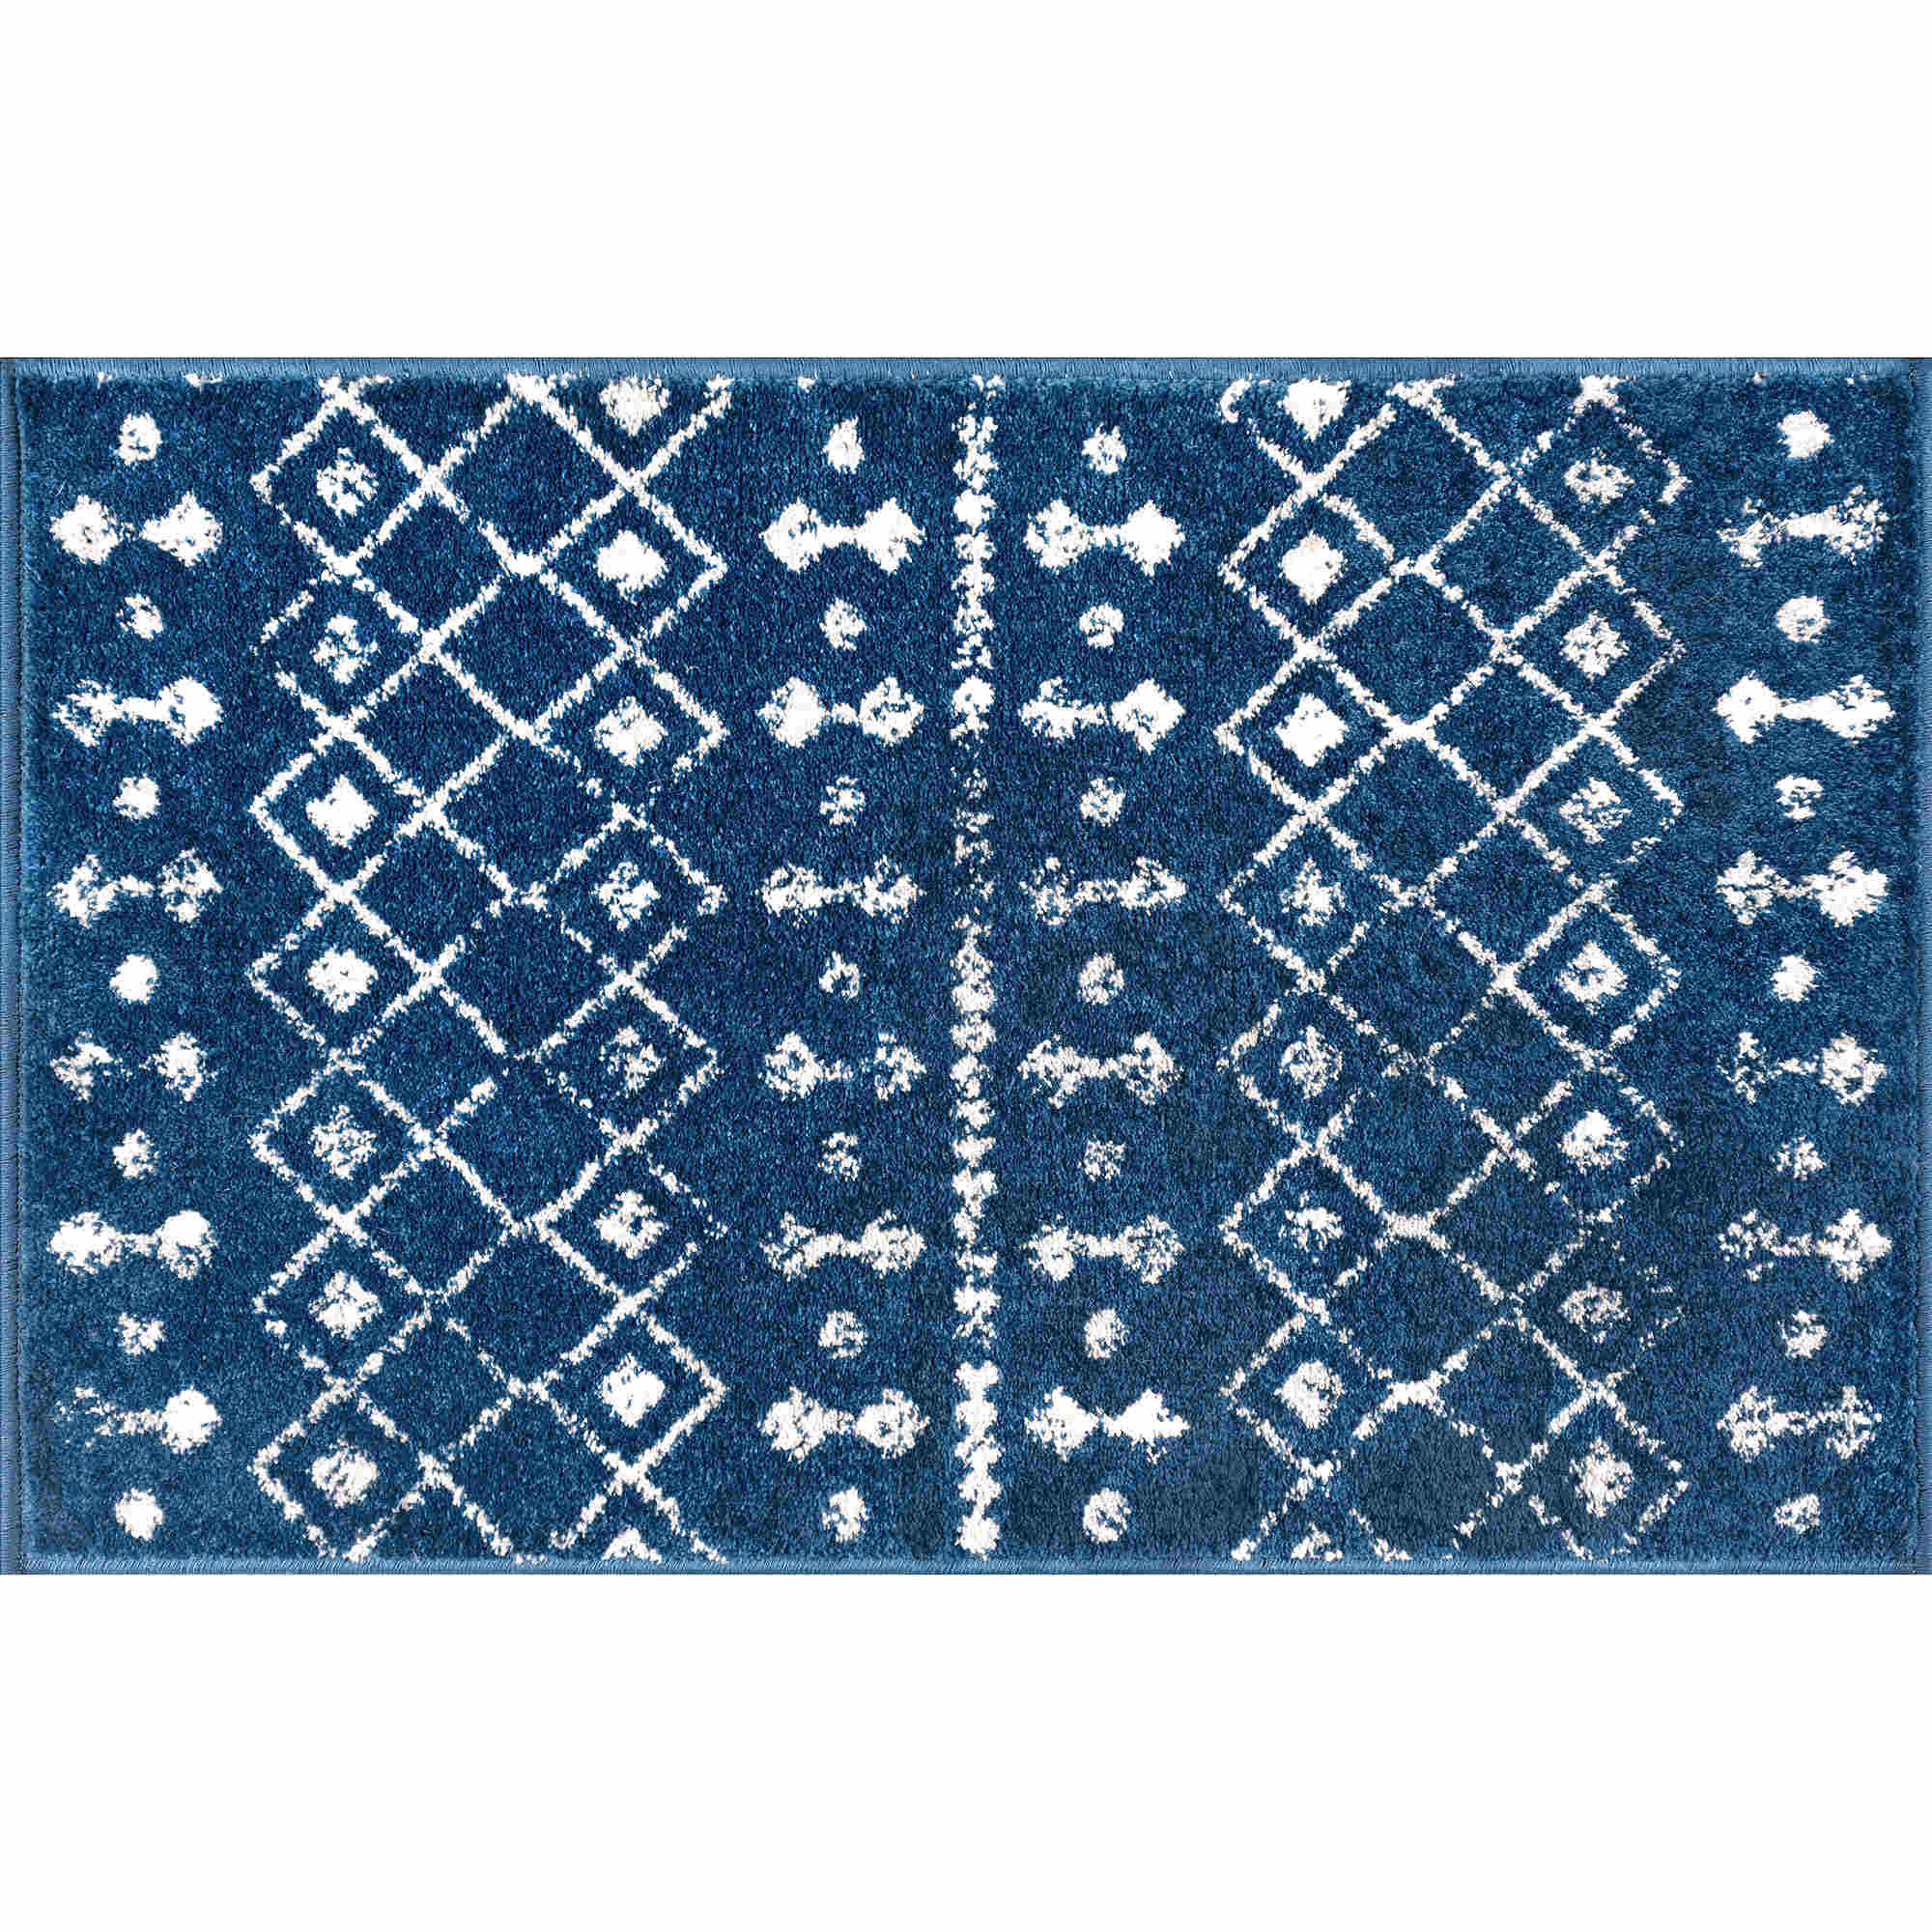 Tayse Jasmine Ayden Transitional Navy Rug